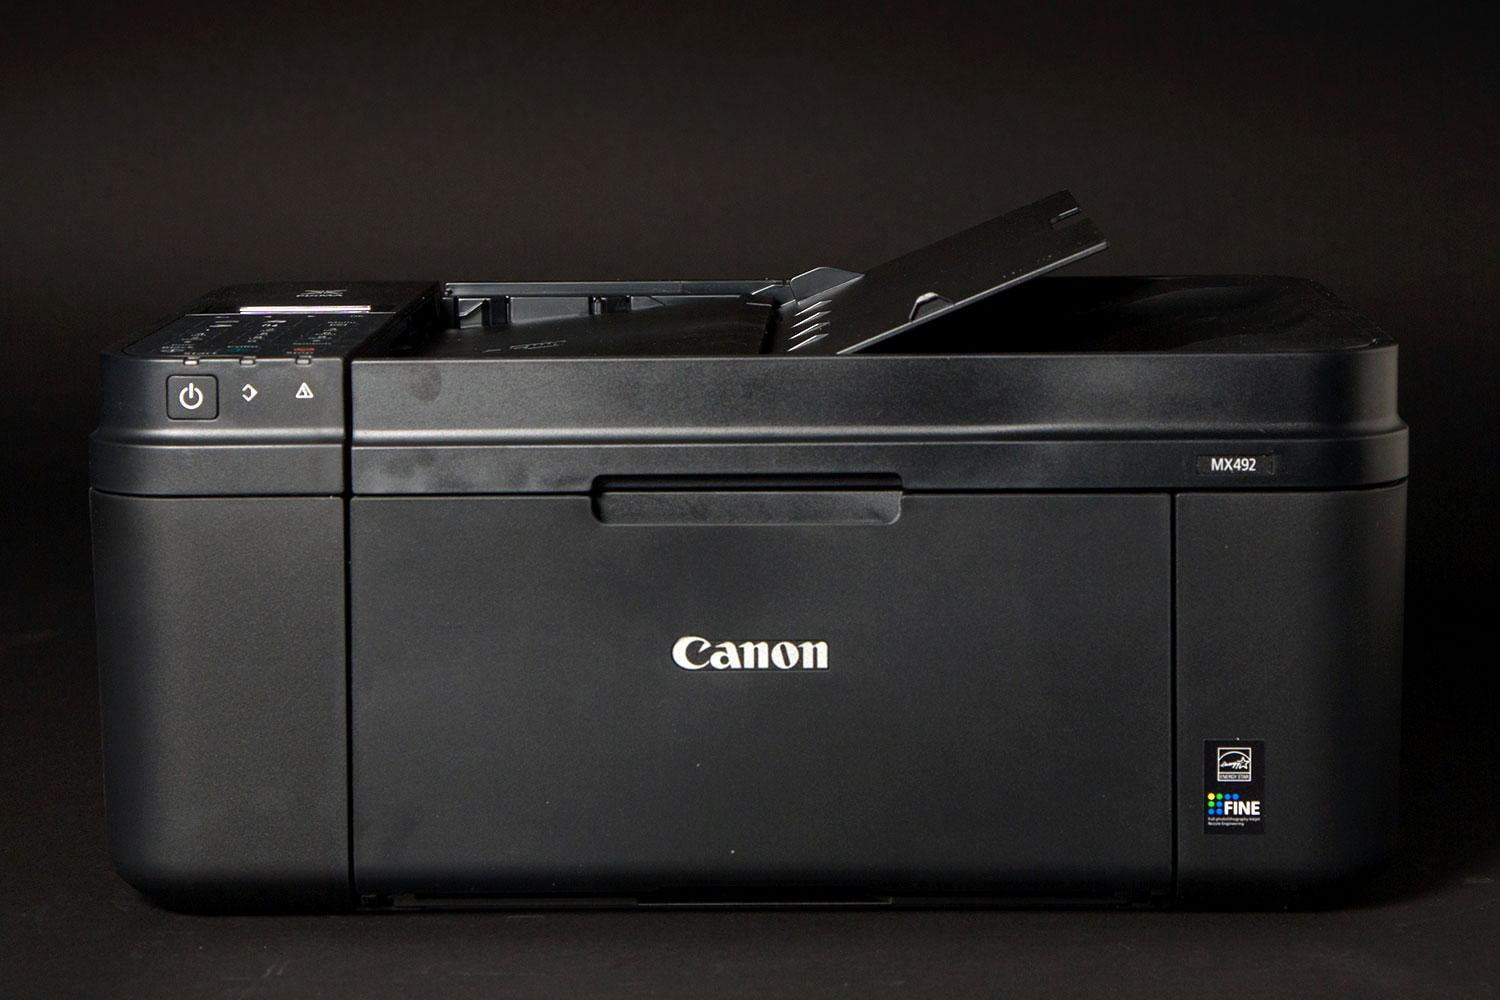 canon pixma mx492 online manual